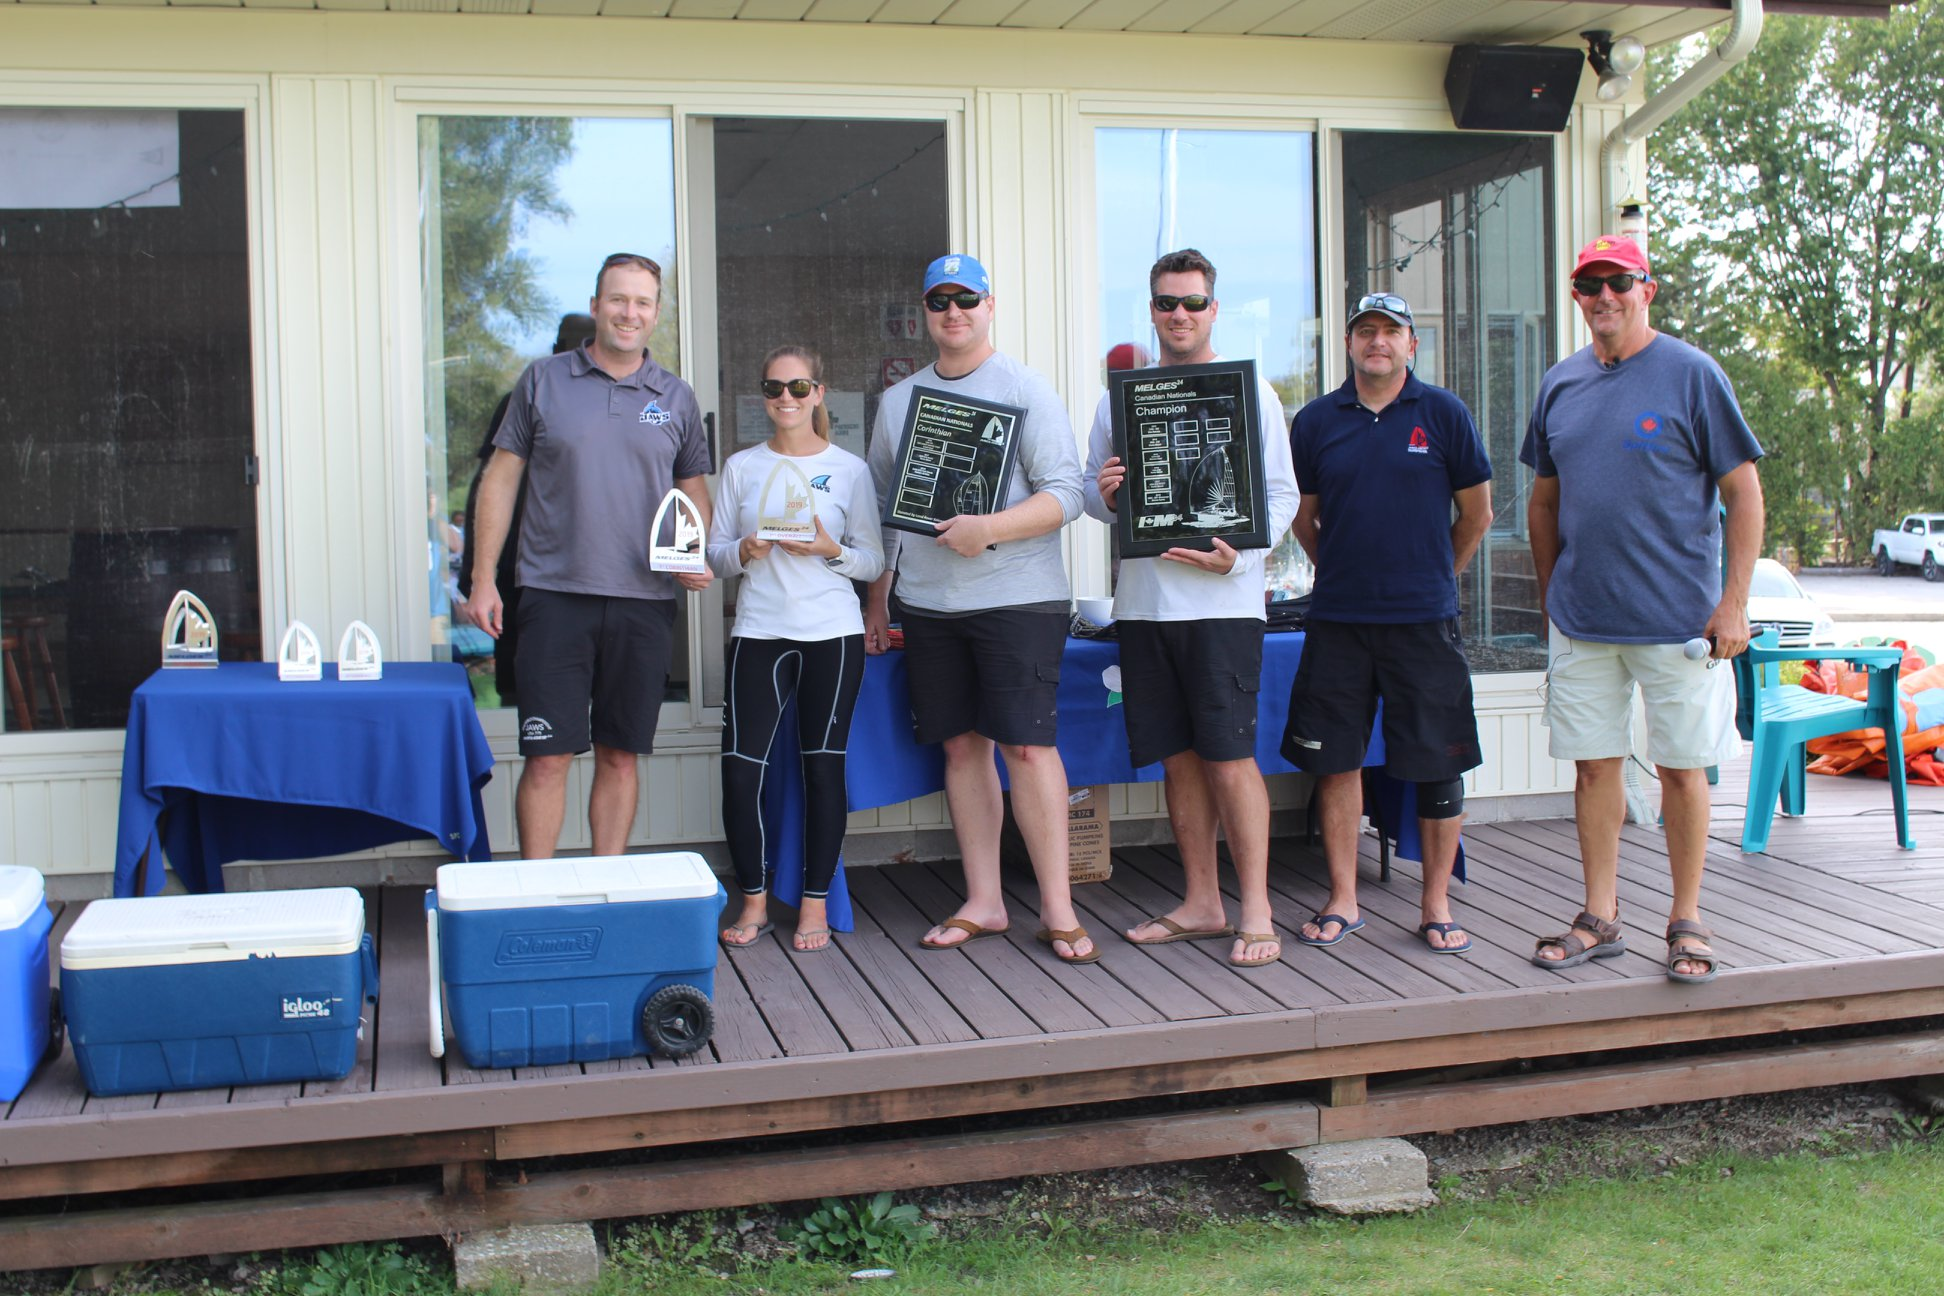 Team Jaws. 2019 Canadian Melges 24 National Championship